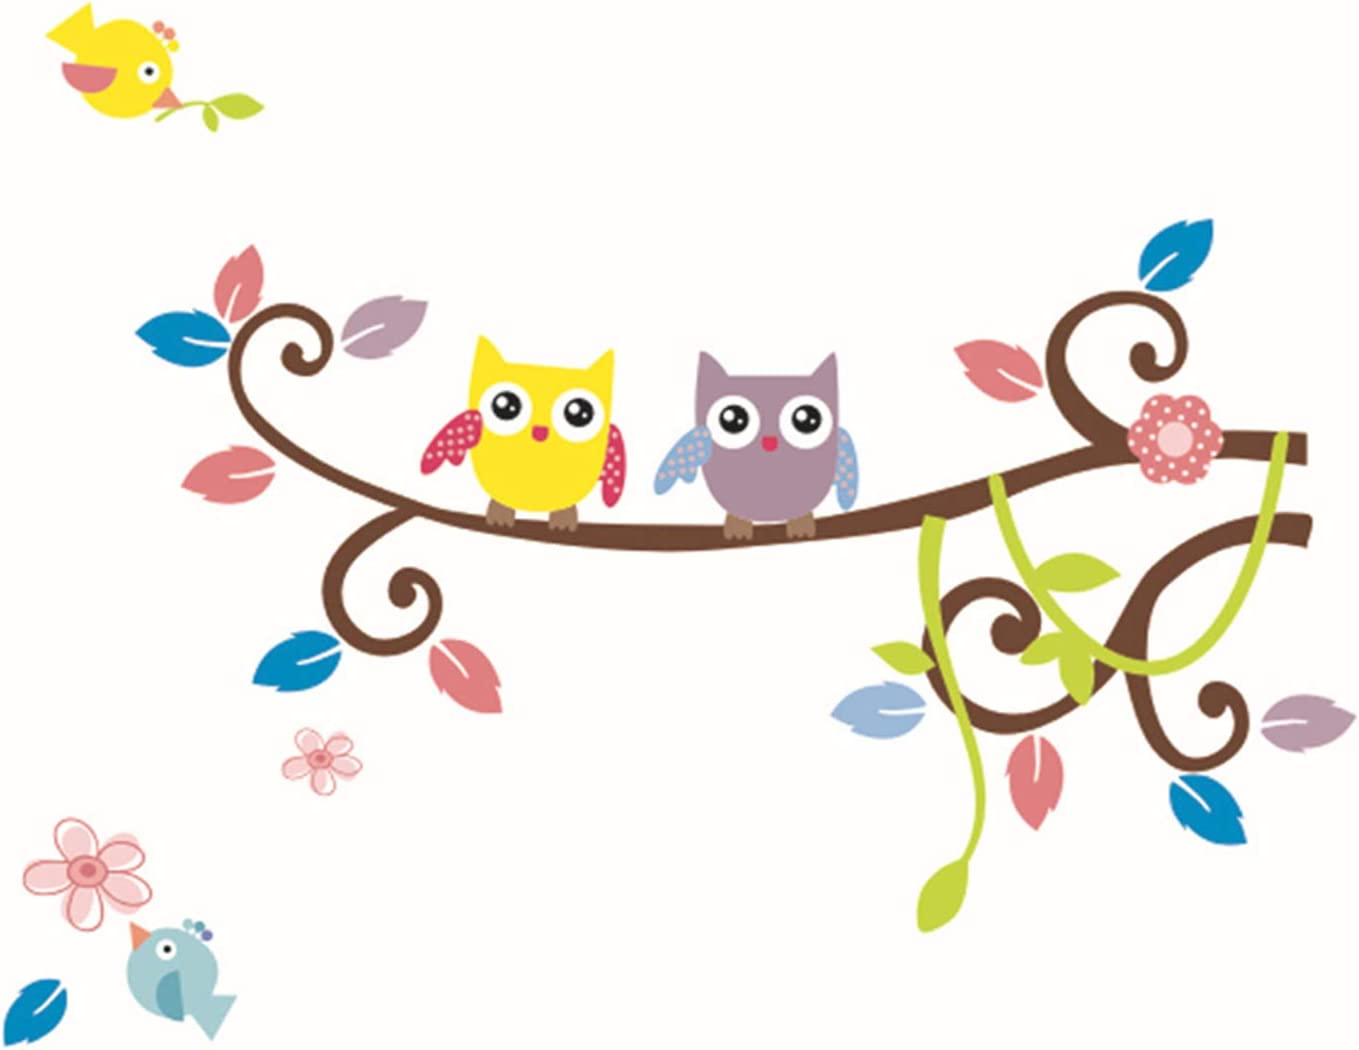 Fymural Animals Tree Wall Stickers - Nursery Decor of Owl Birds Wall Decals for Toddler Kids Girls Room Baby Bedroom Decorations DIY Removable Mural